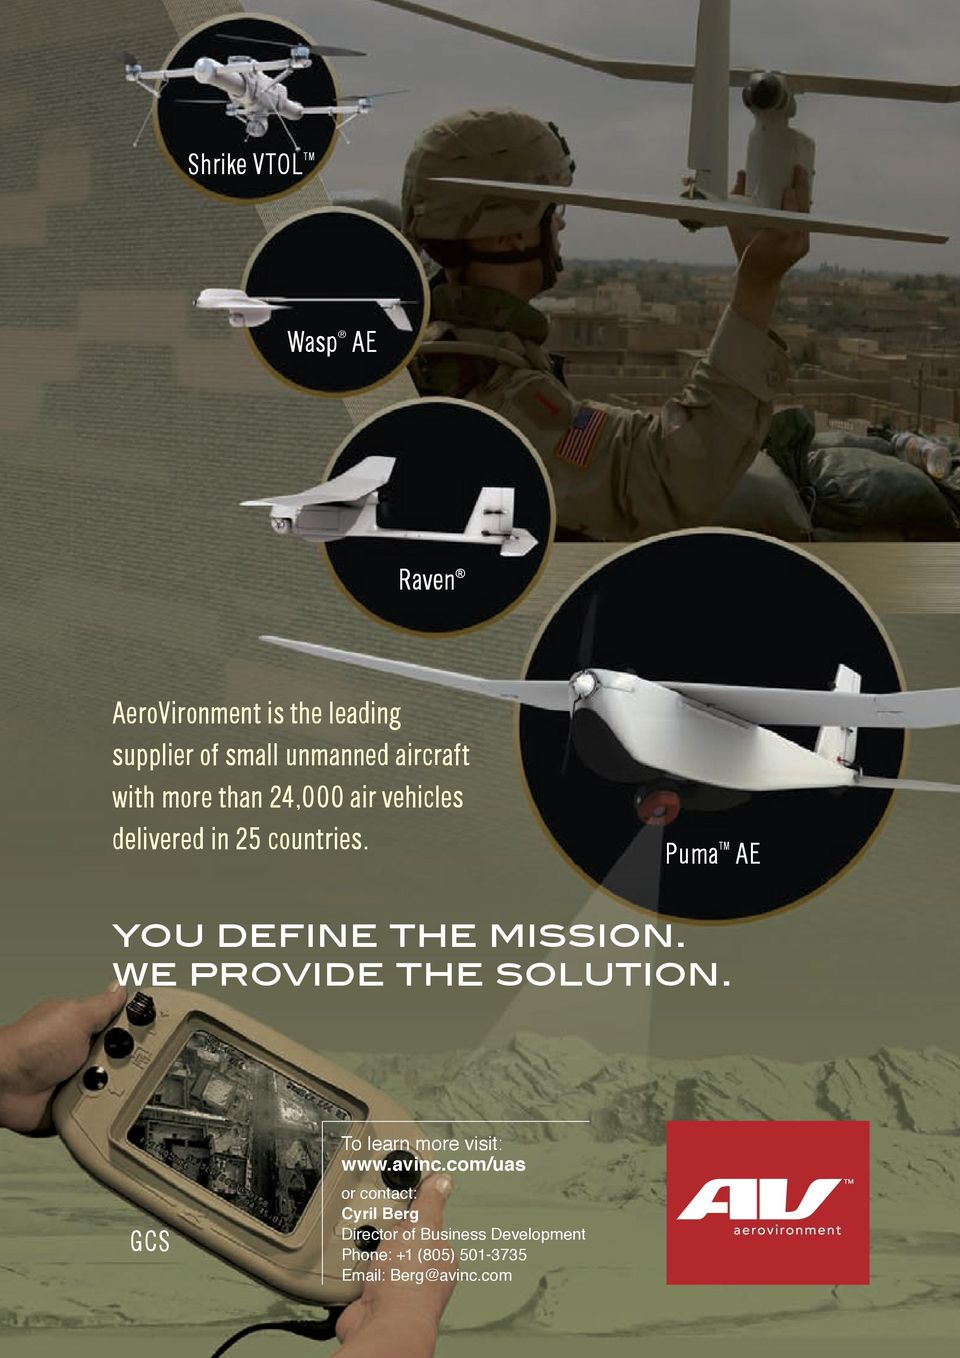 Puma TM AE you define the mission. we provide the solution. To learn more visit: www.avinc.